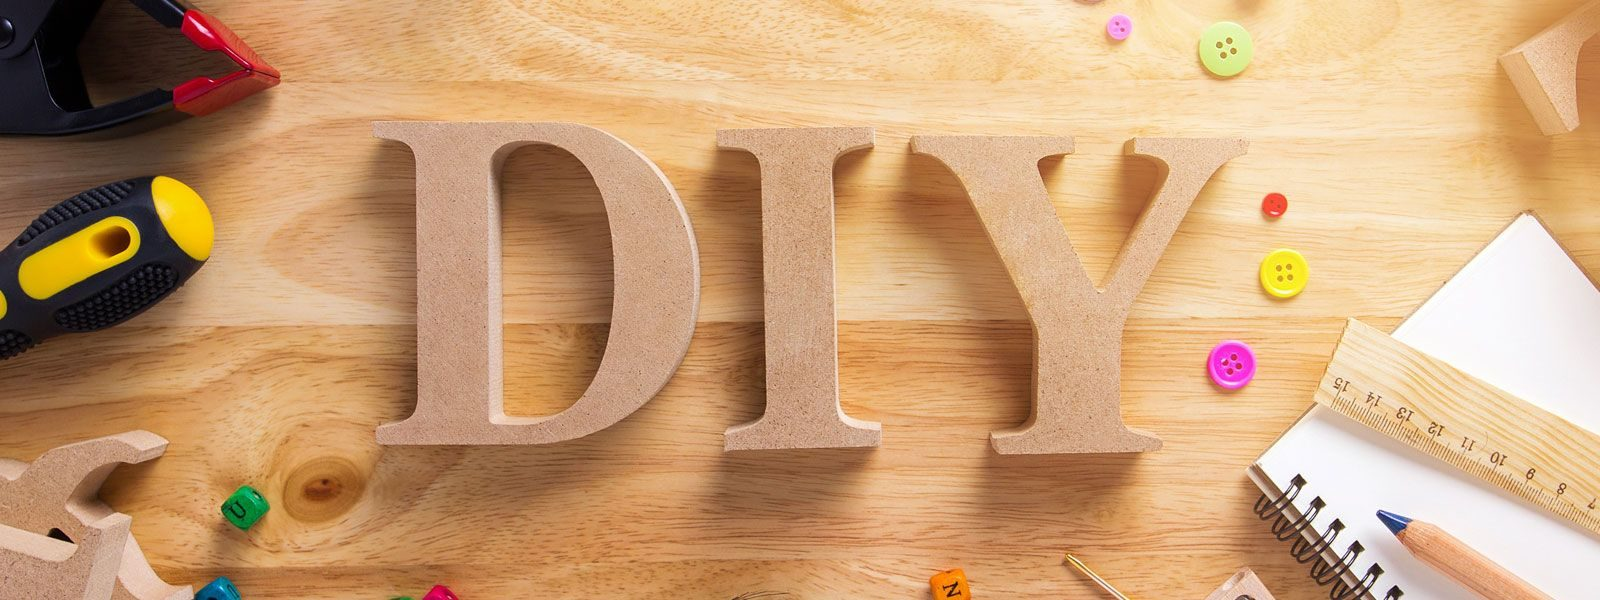 Do it yourself wooden letters